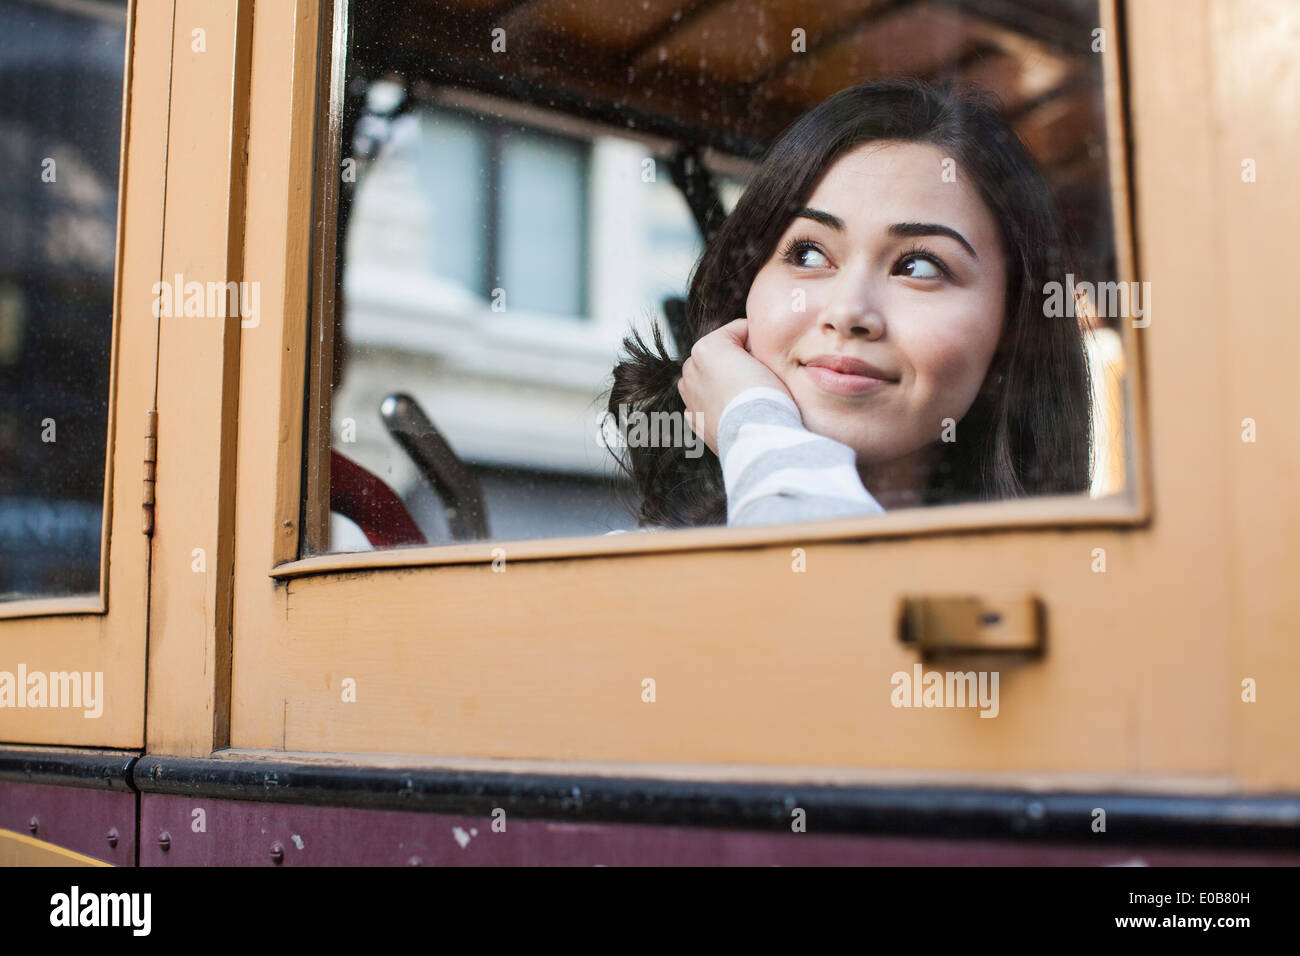 Portrait of young woman, looking through window of cable car - Stock Image